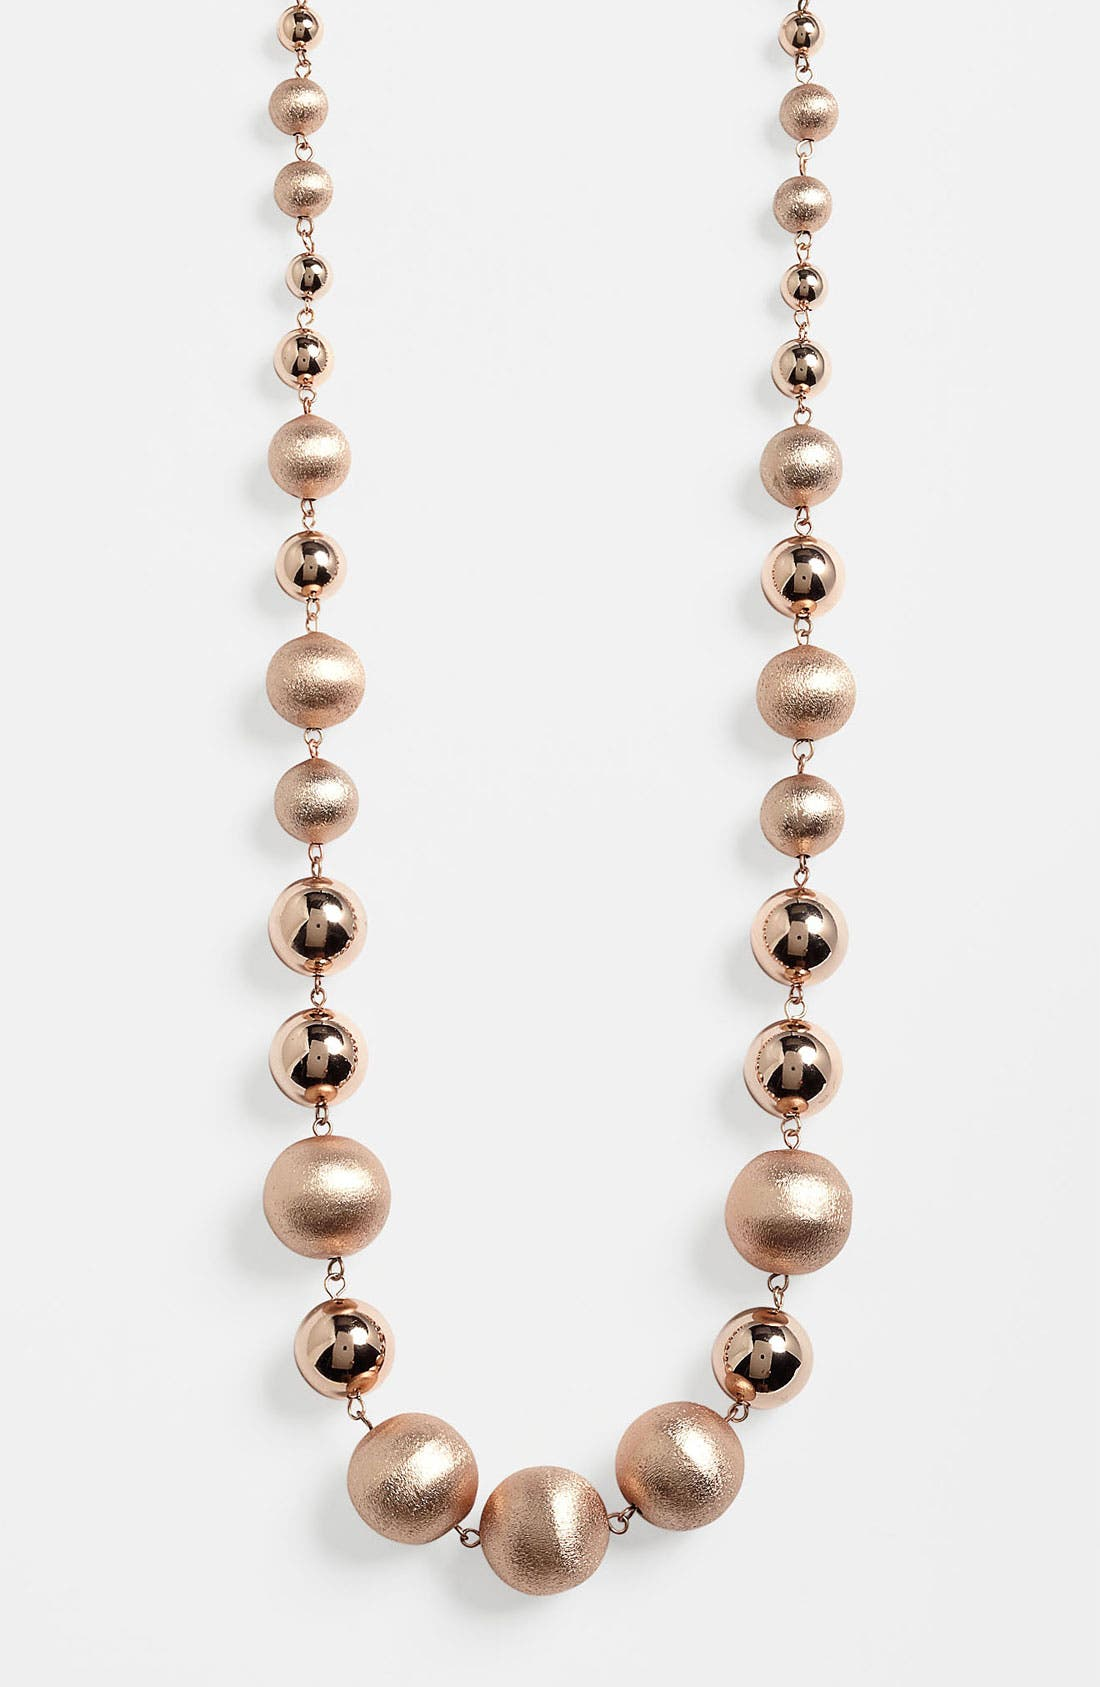 Alternate Image 1 Selected - Nordstrom 'Pebble Beach' Long Beaded Necklace